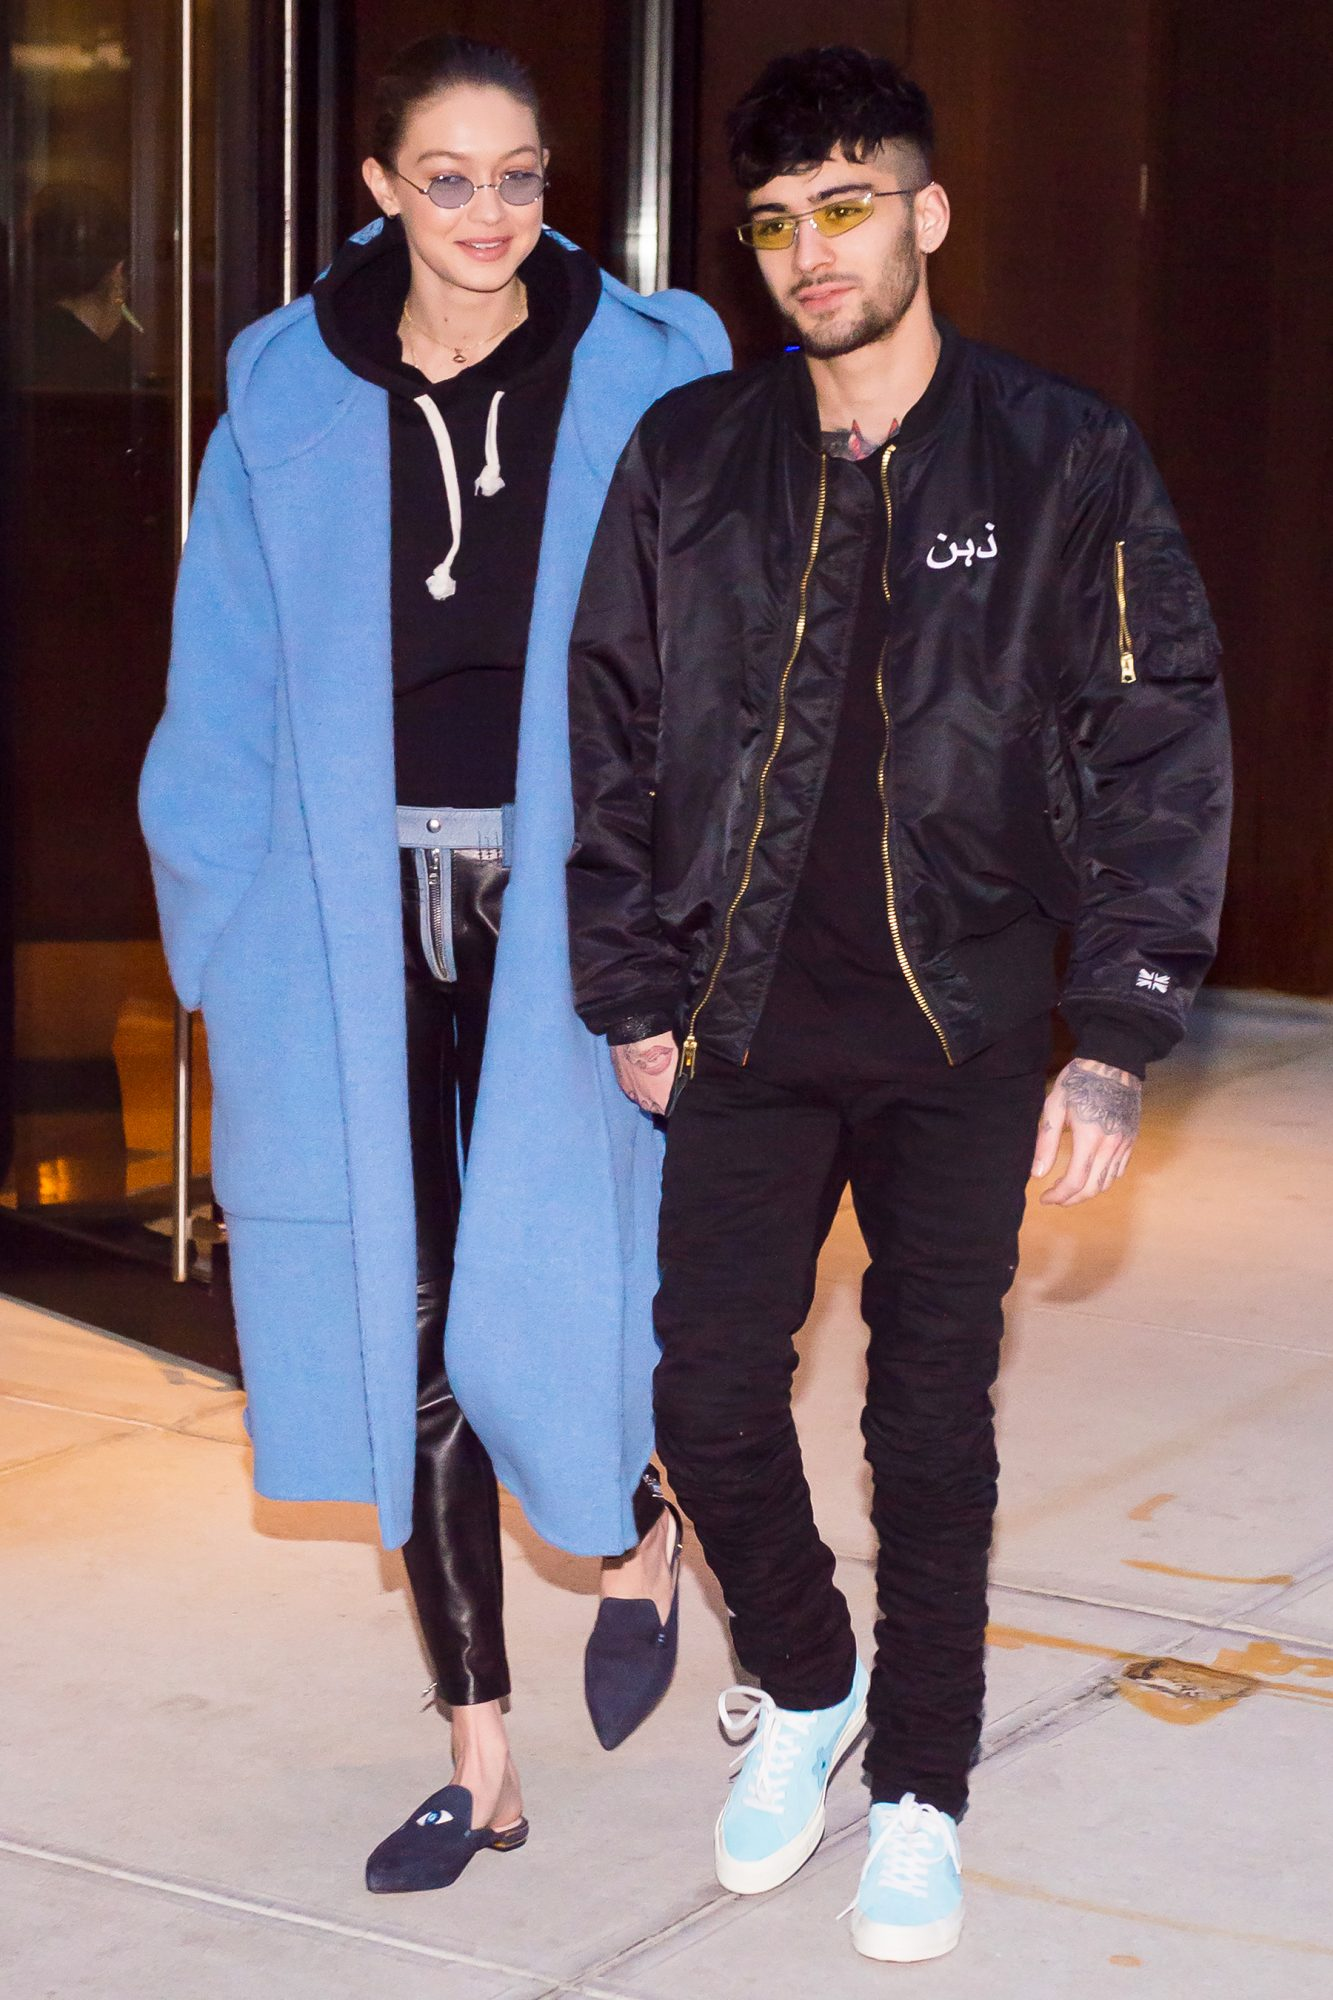 EXCLUSIVE: Gigi Hadid and Zayn Malik seen walking hand in hand in New York City